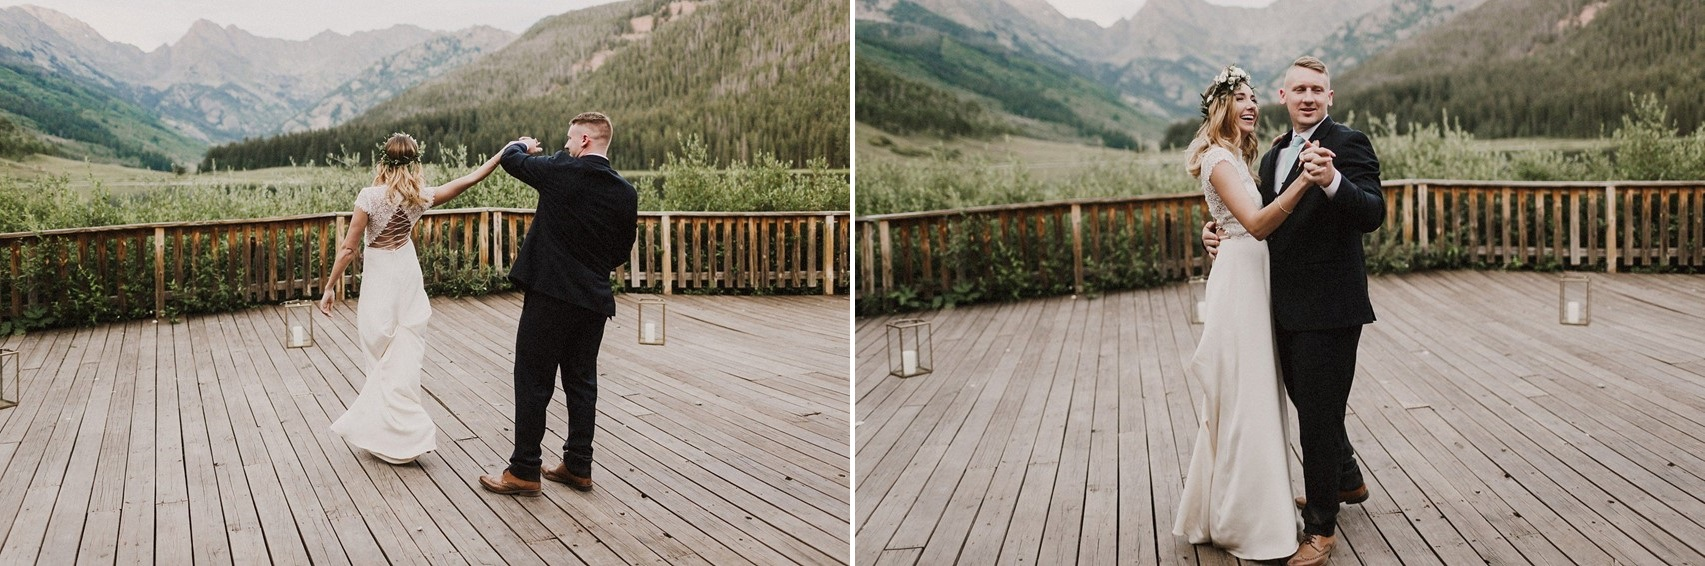 First Dance in the shadow of Mountains